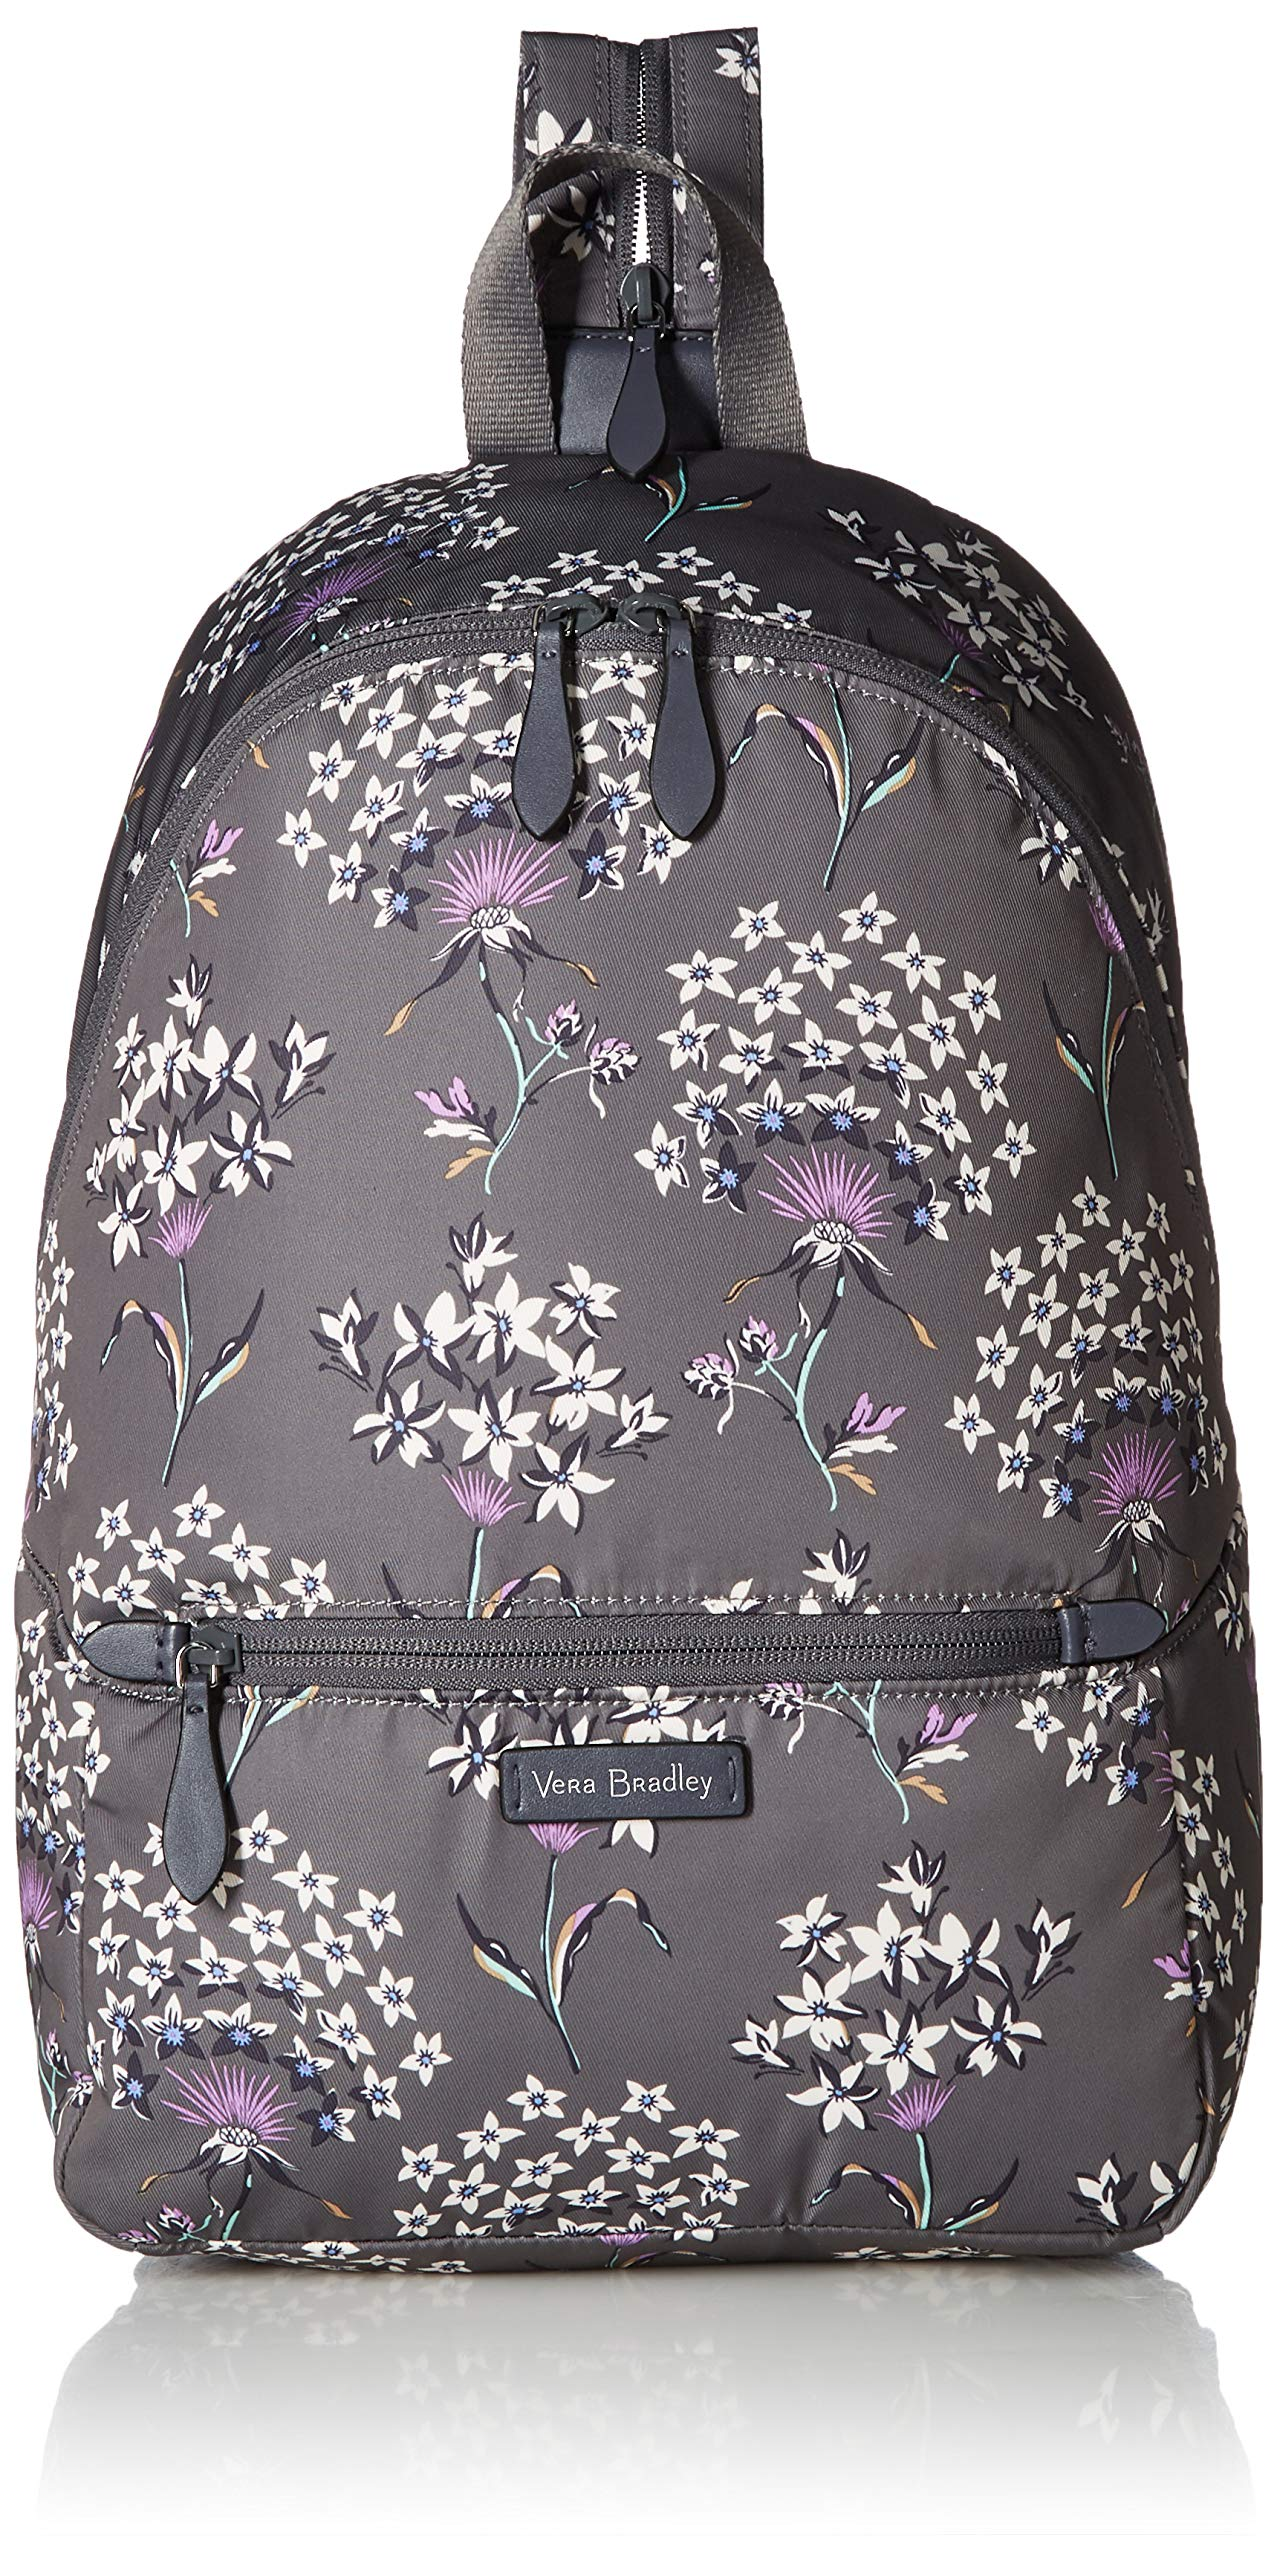 Vera Bradley Midtown Convertible Backpack, dandelion Wishes by Vera Bradley